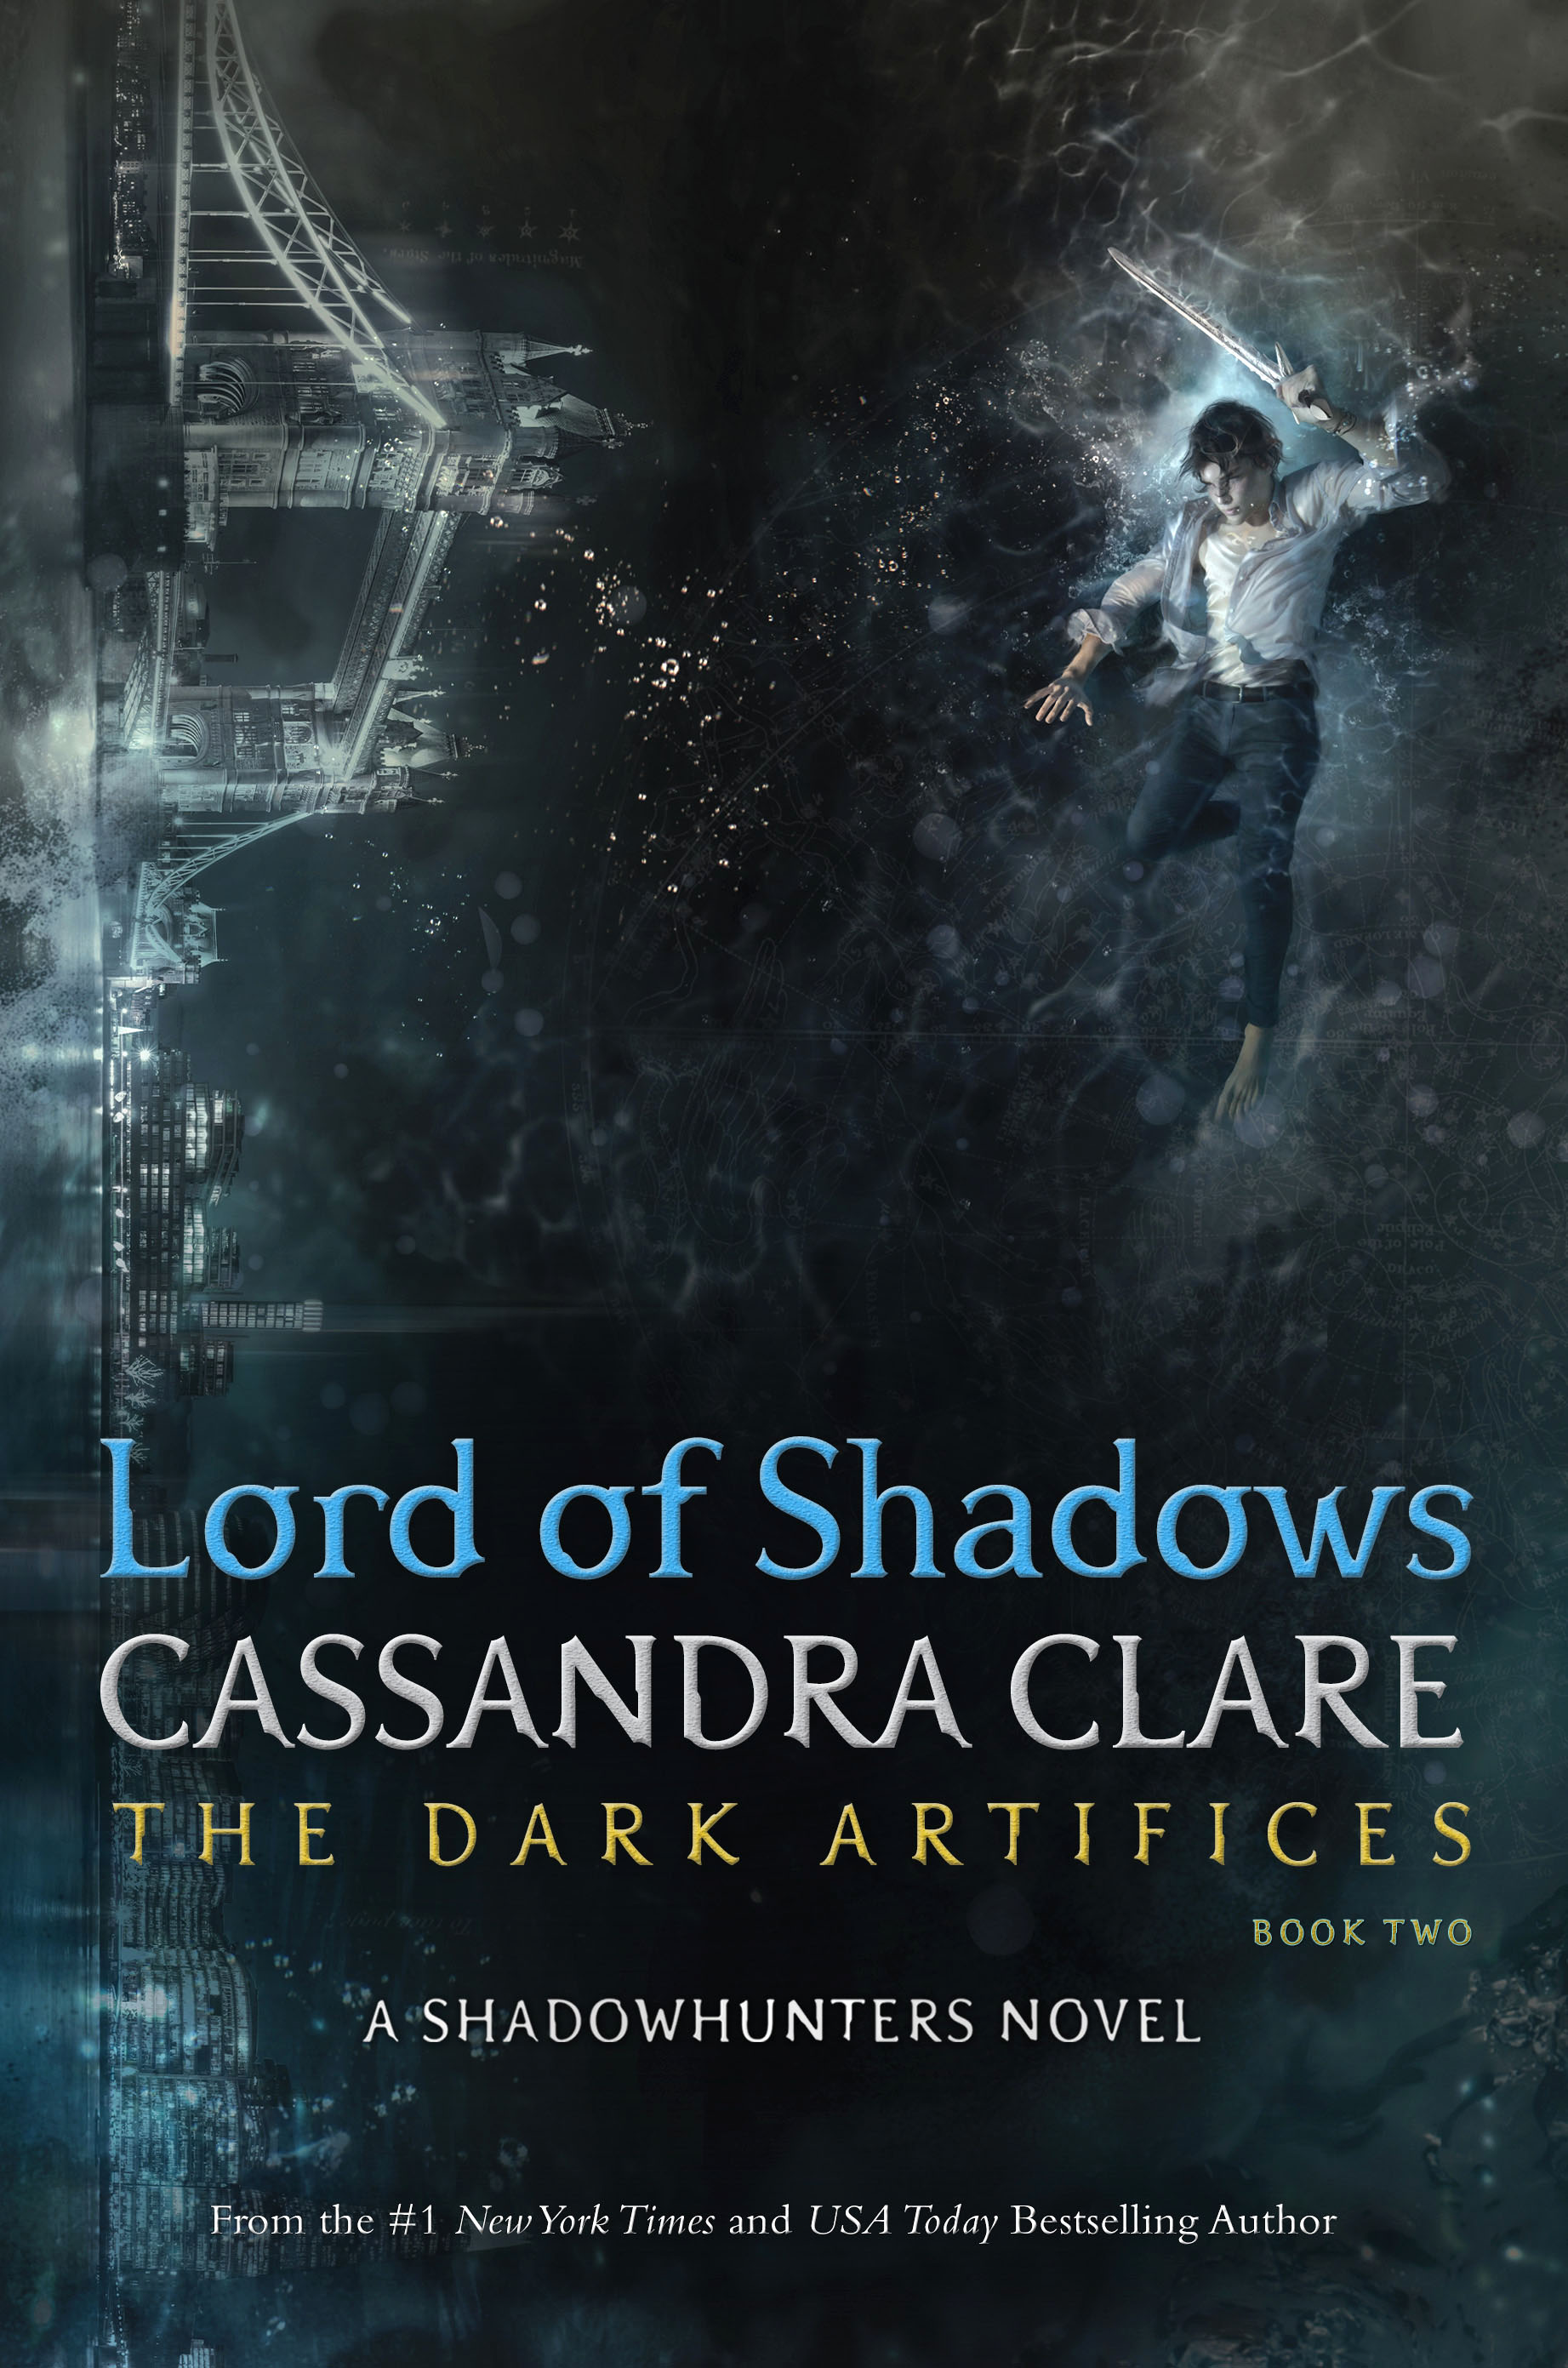 Image result for Lord of Shadows Cover Cassandra Clare